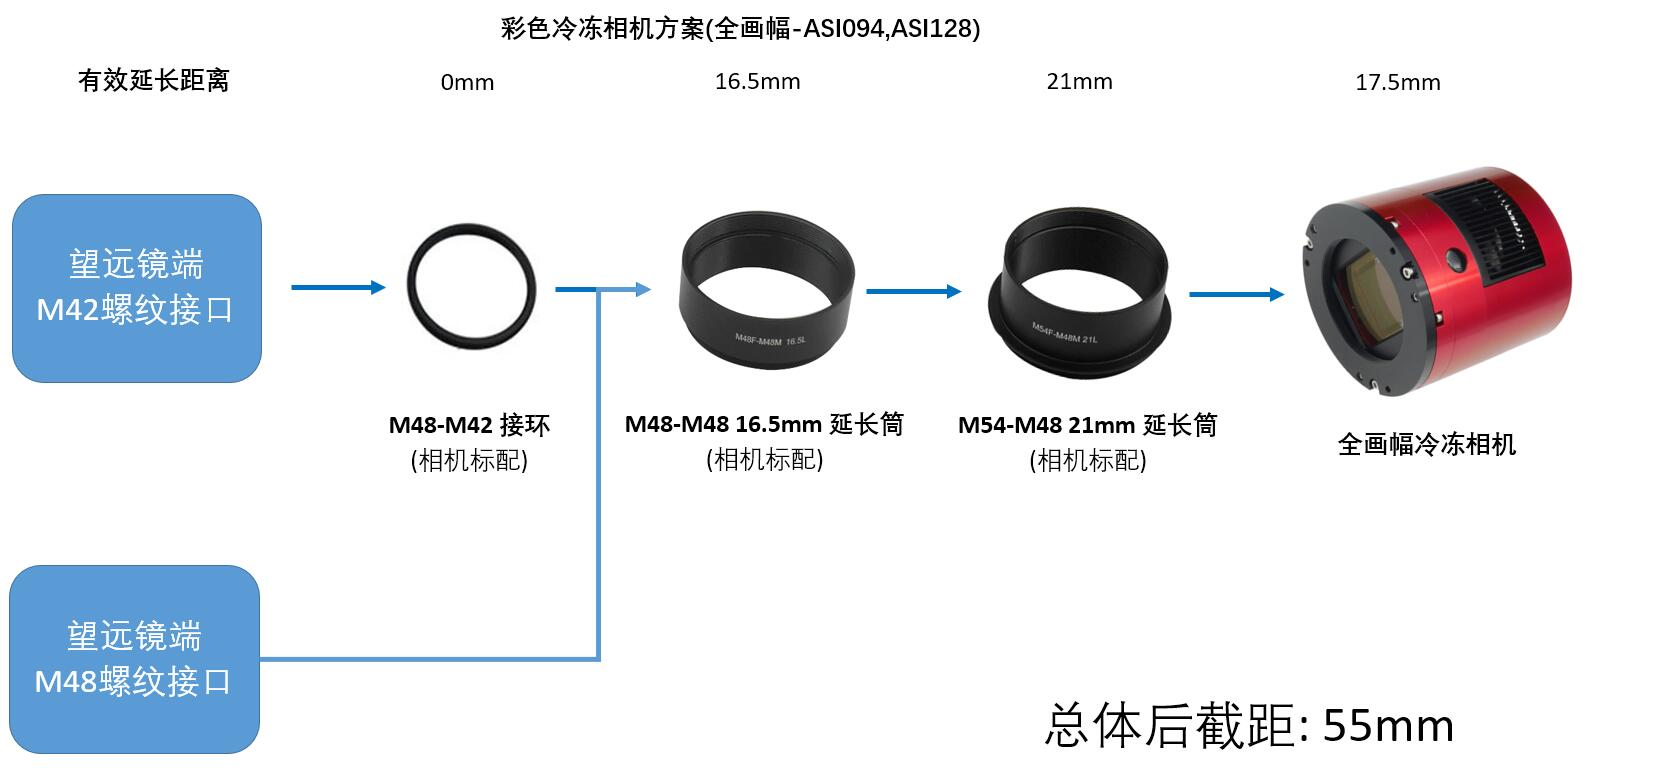 Cooled Color Camera solution(Full frame-ASI094,ASI128)(中文).jpg